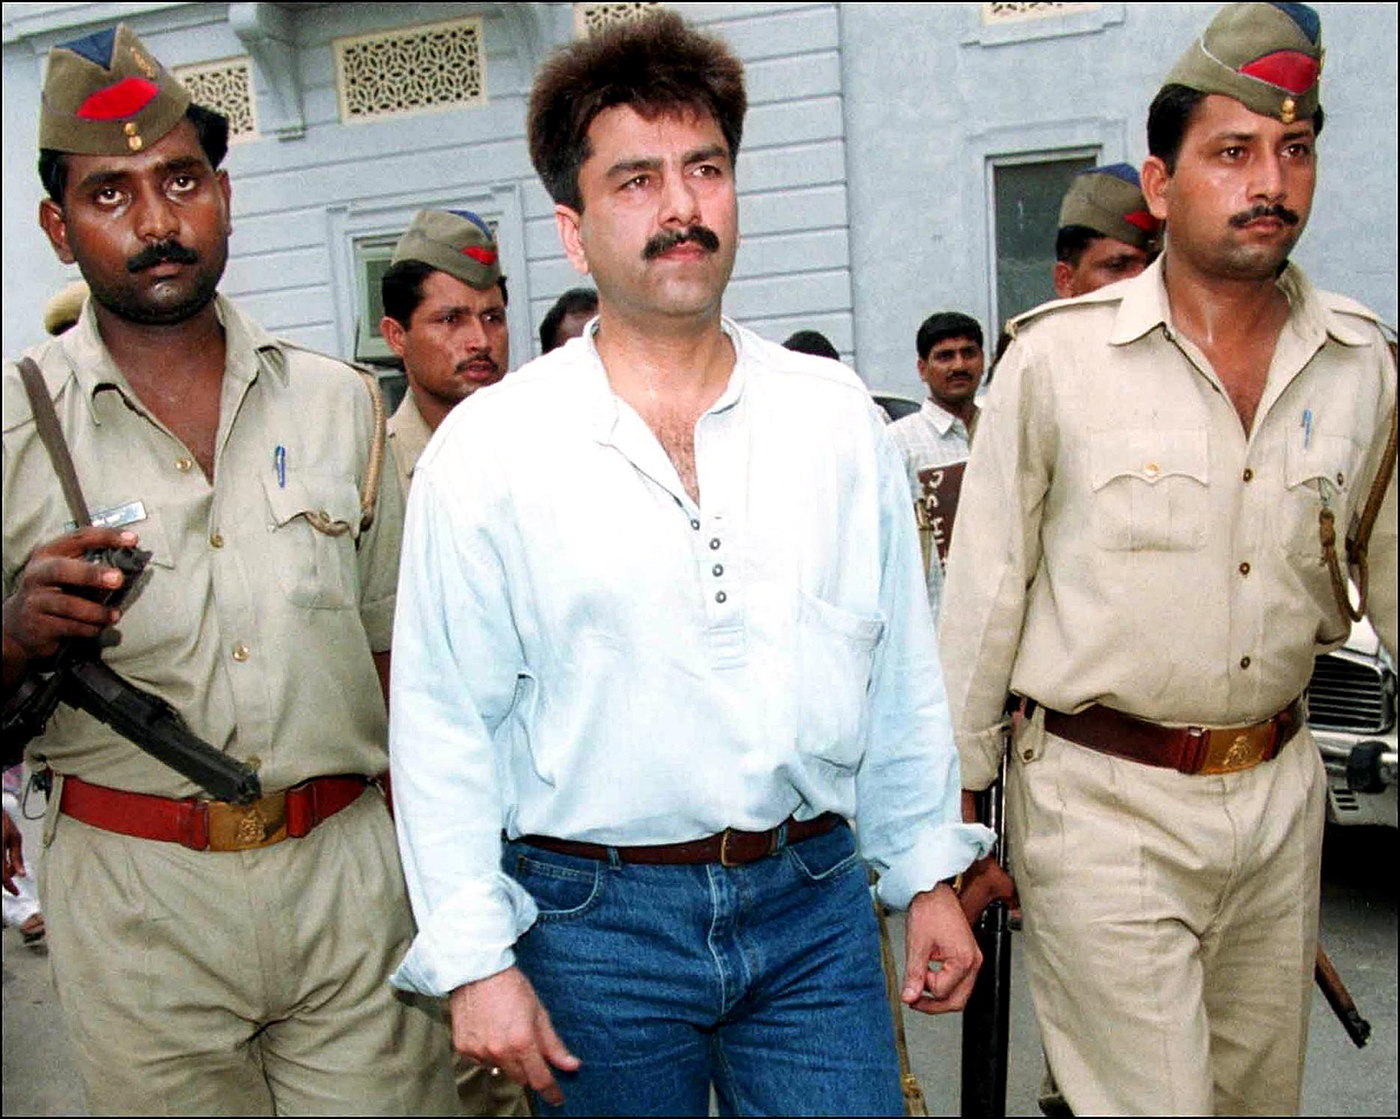 Prabhakar being taken to court for his involvement in a financial scam, New Delhi, 2001